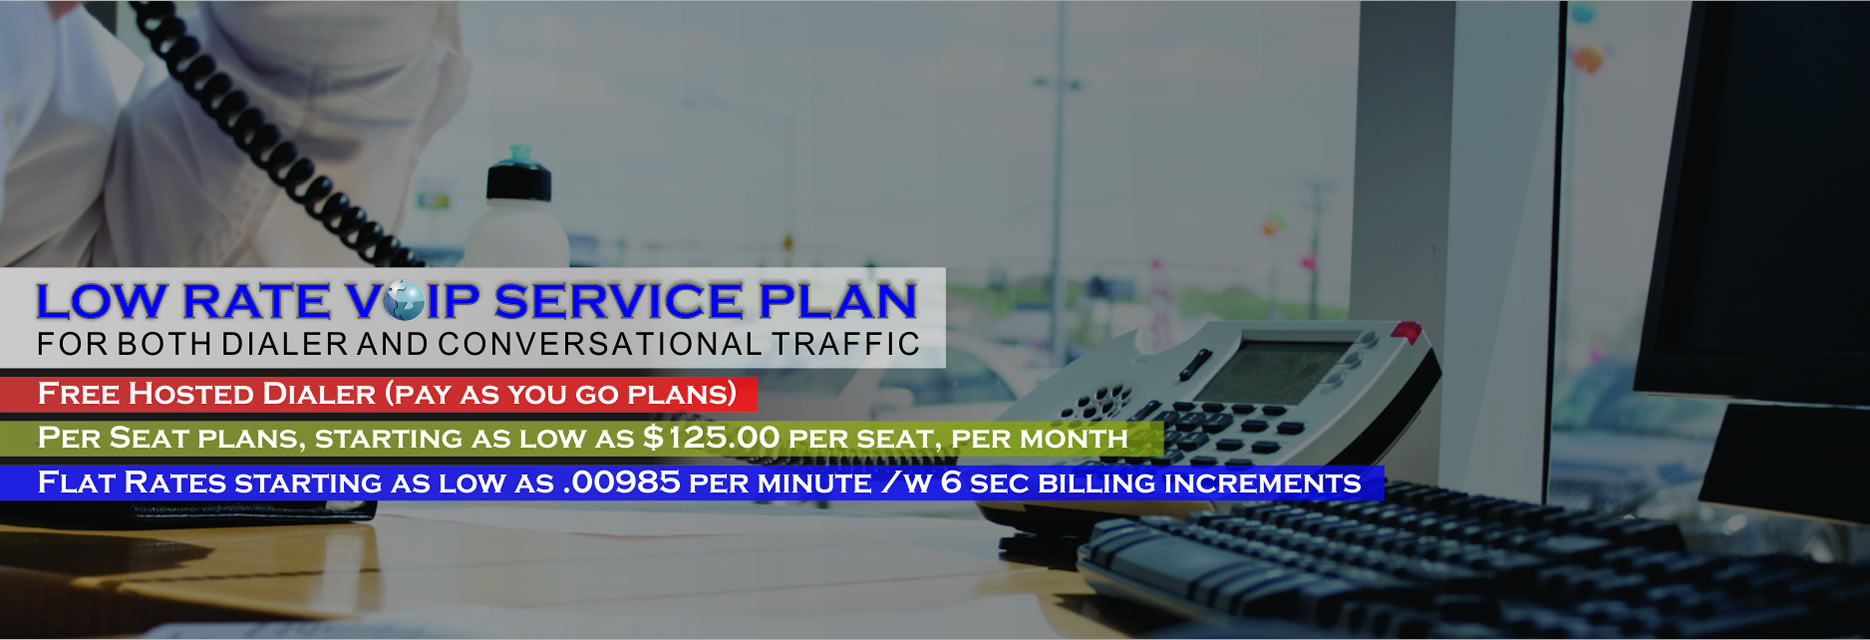 Low Rate VOIP Service Plan